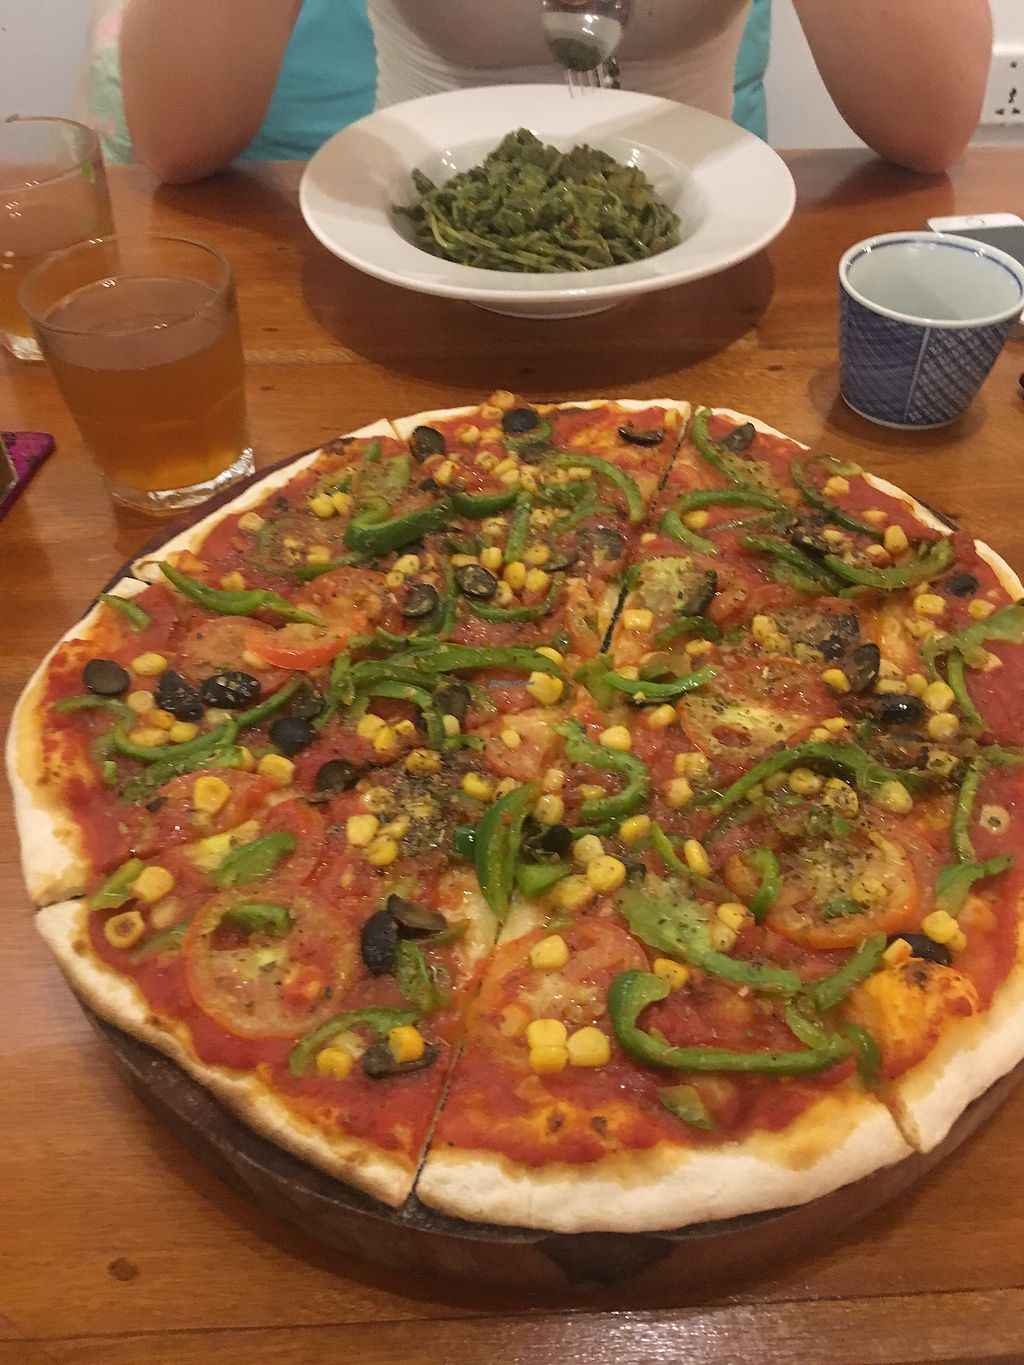 """Photo of Simple Things  by <a href=""""/members/profile/HungryEaters"""">HungryEaters</a> <br/>Vegan Pizza & Pesto Pasta <br/> October 5, 2017  - <a href='/contact/abuse/image/72312/312016'>Report</a>"""